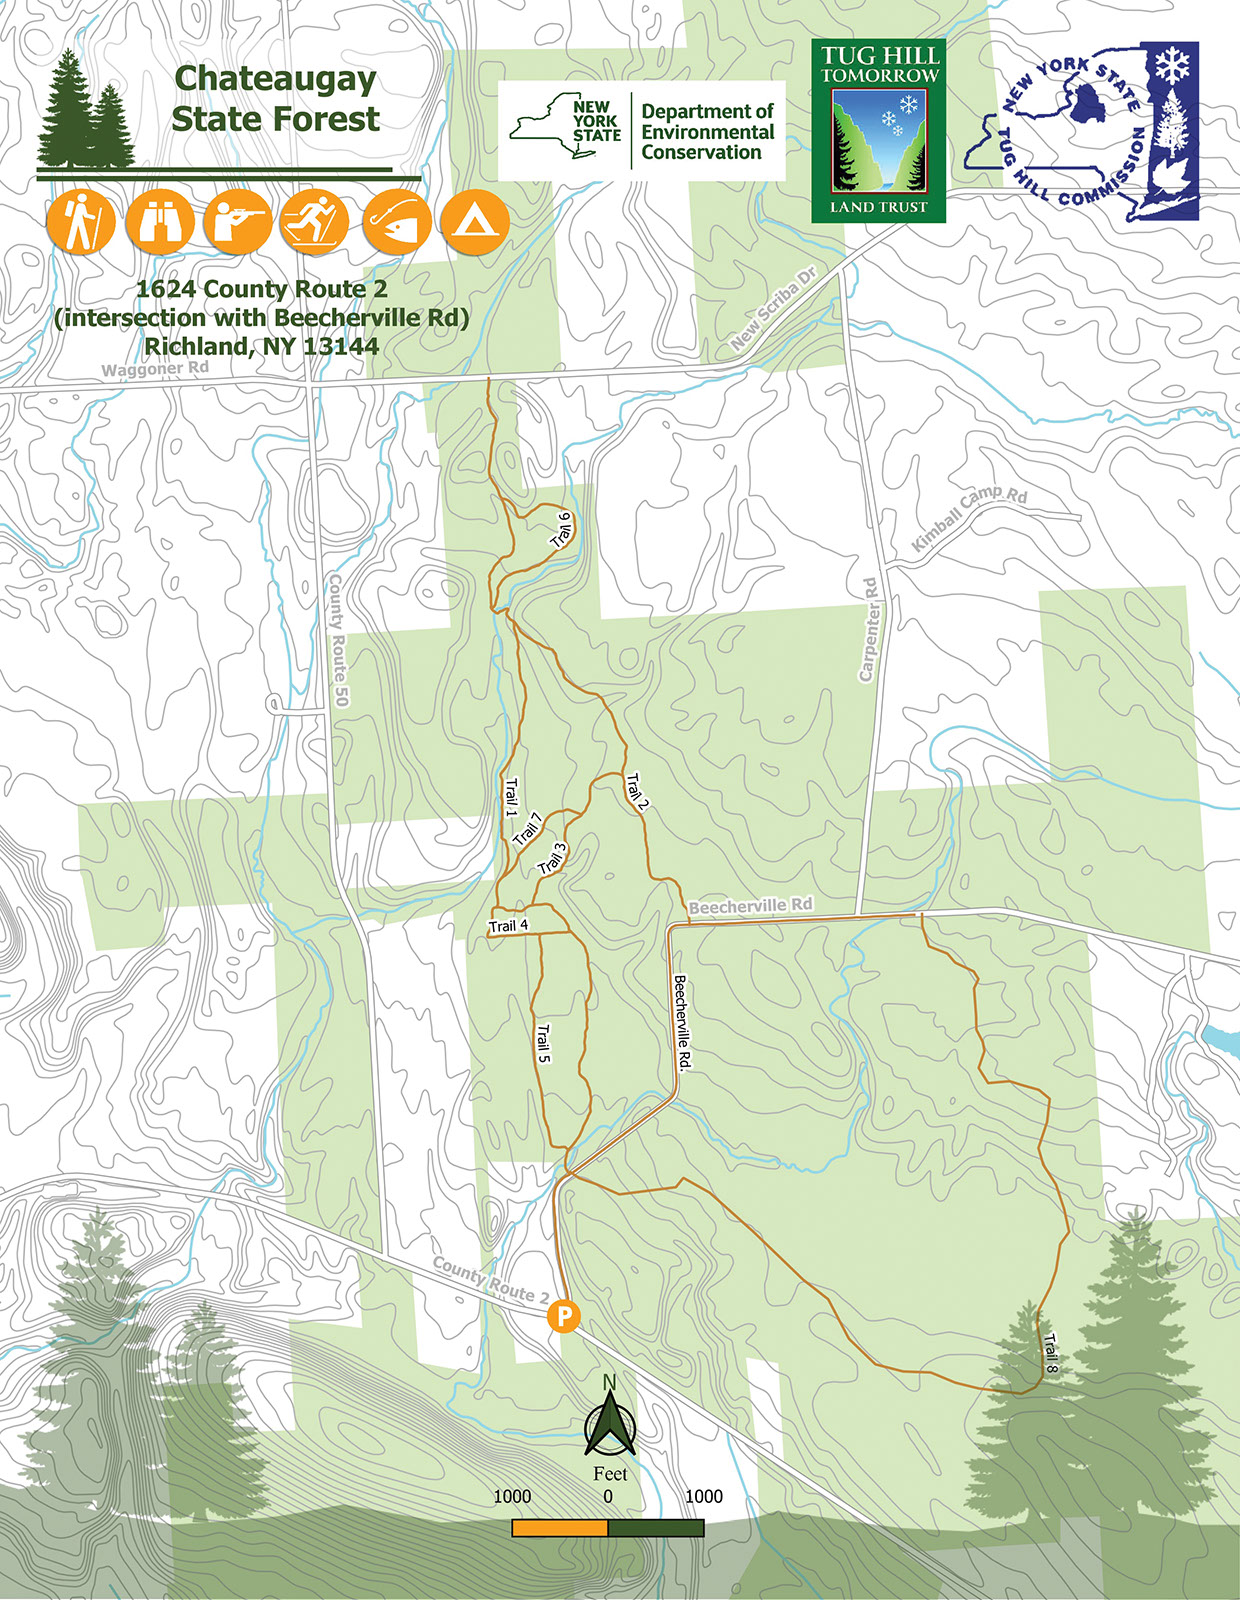 Chateaugay State Forest Map